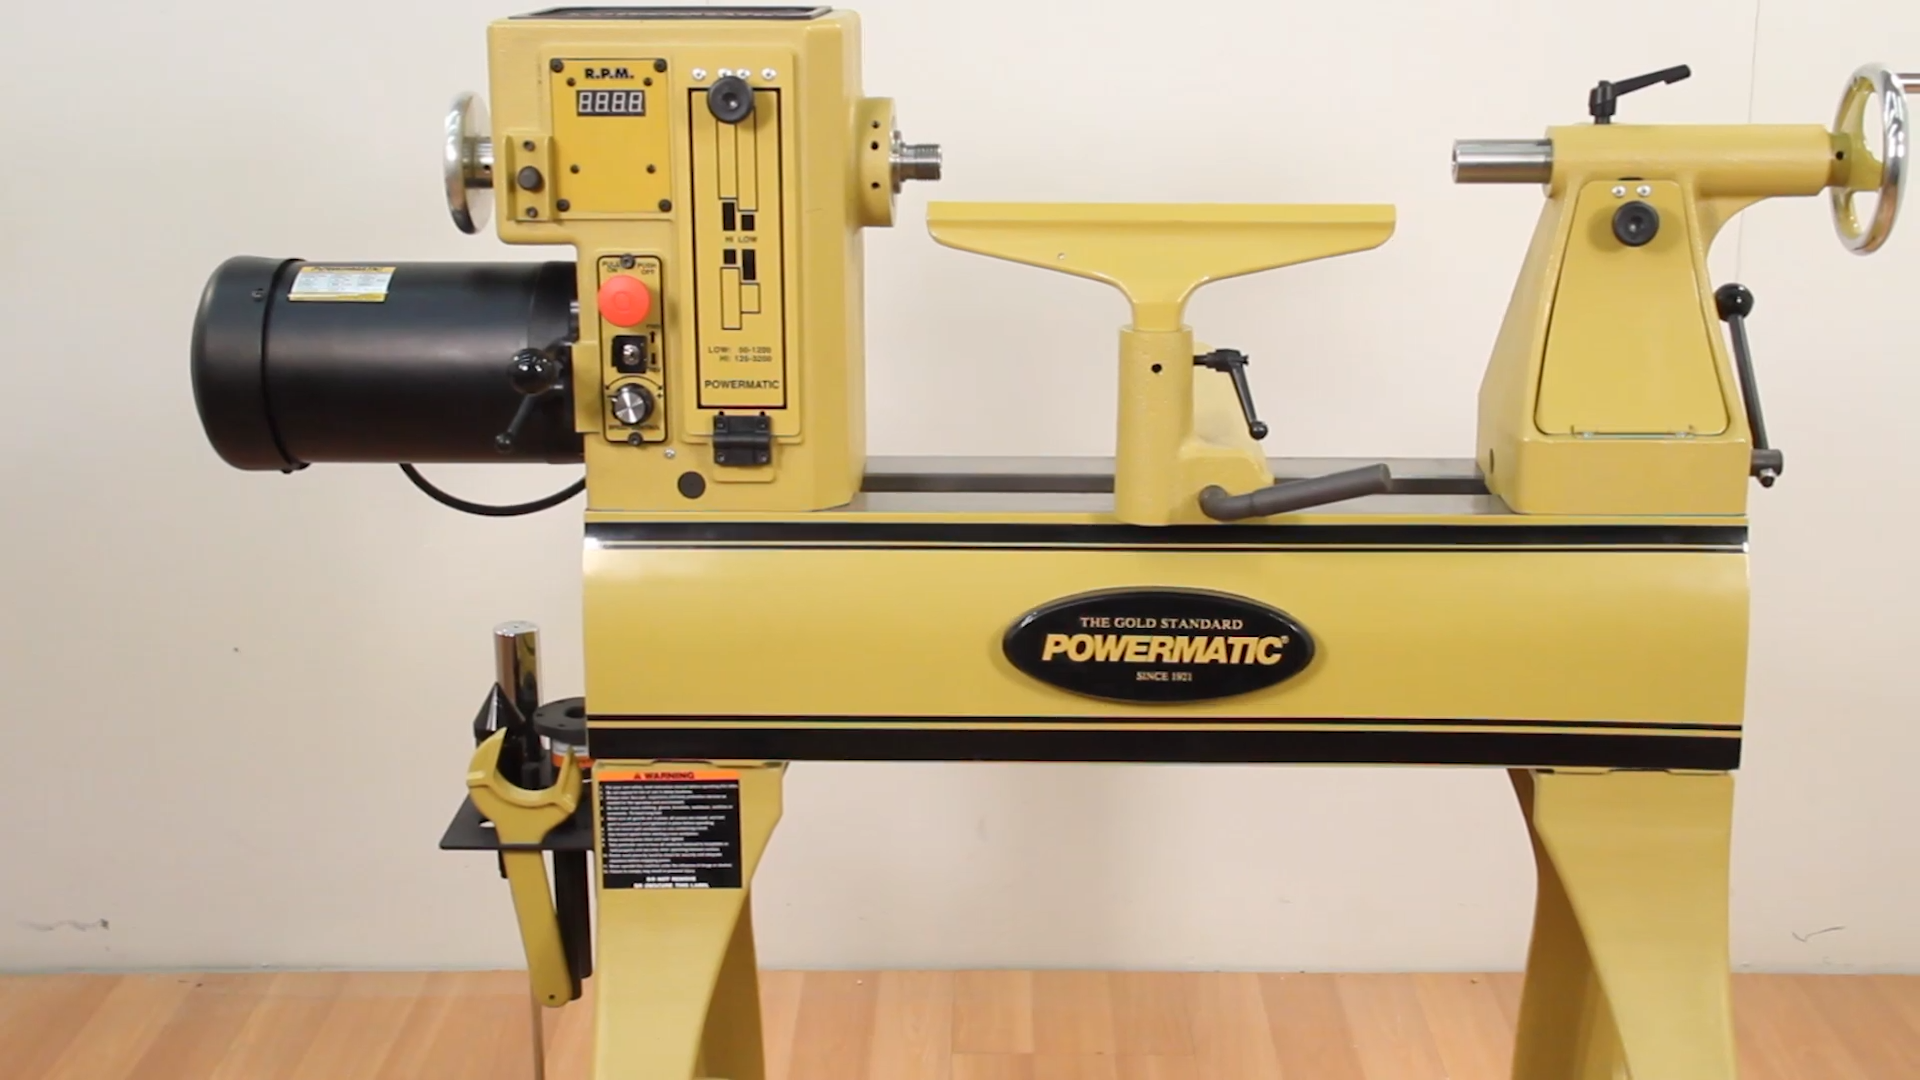 Powermatic Pm2020 Lathe Power Tools Craft Supplies Usa Video Video Wood Turning Woodworking Woodturning Videos